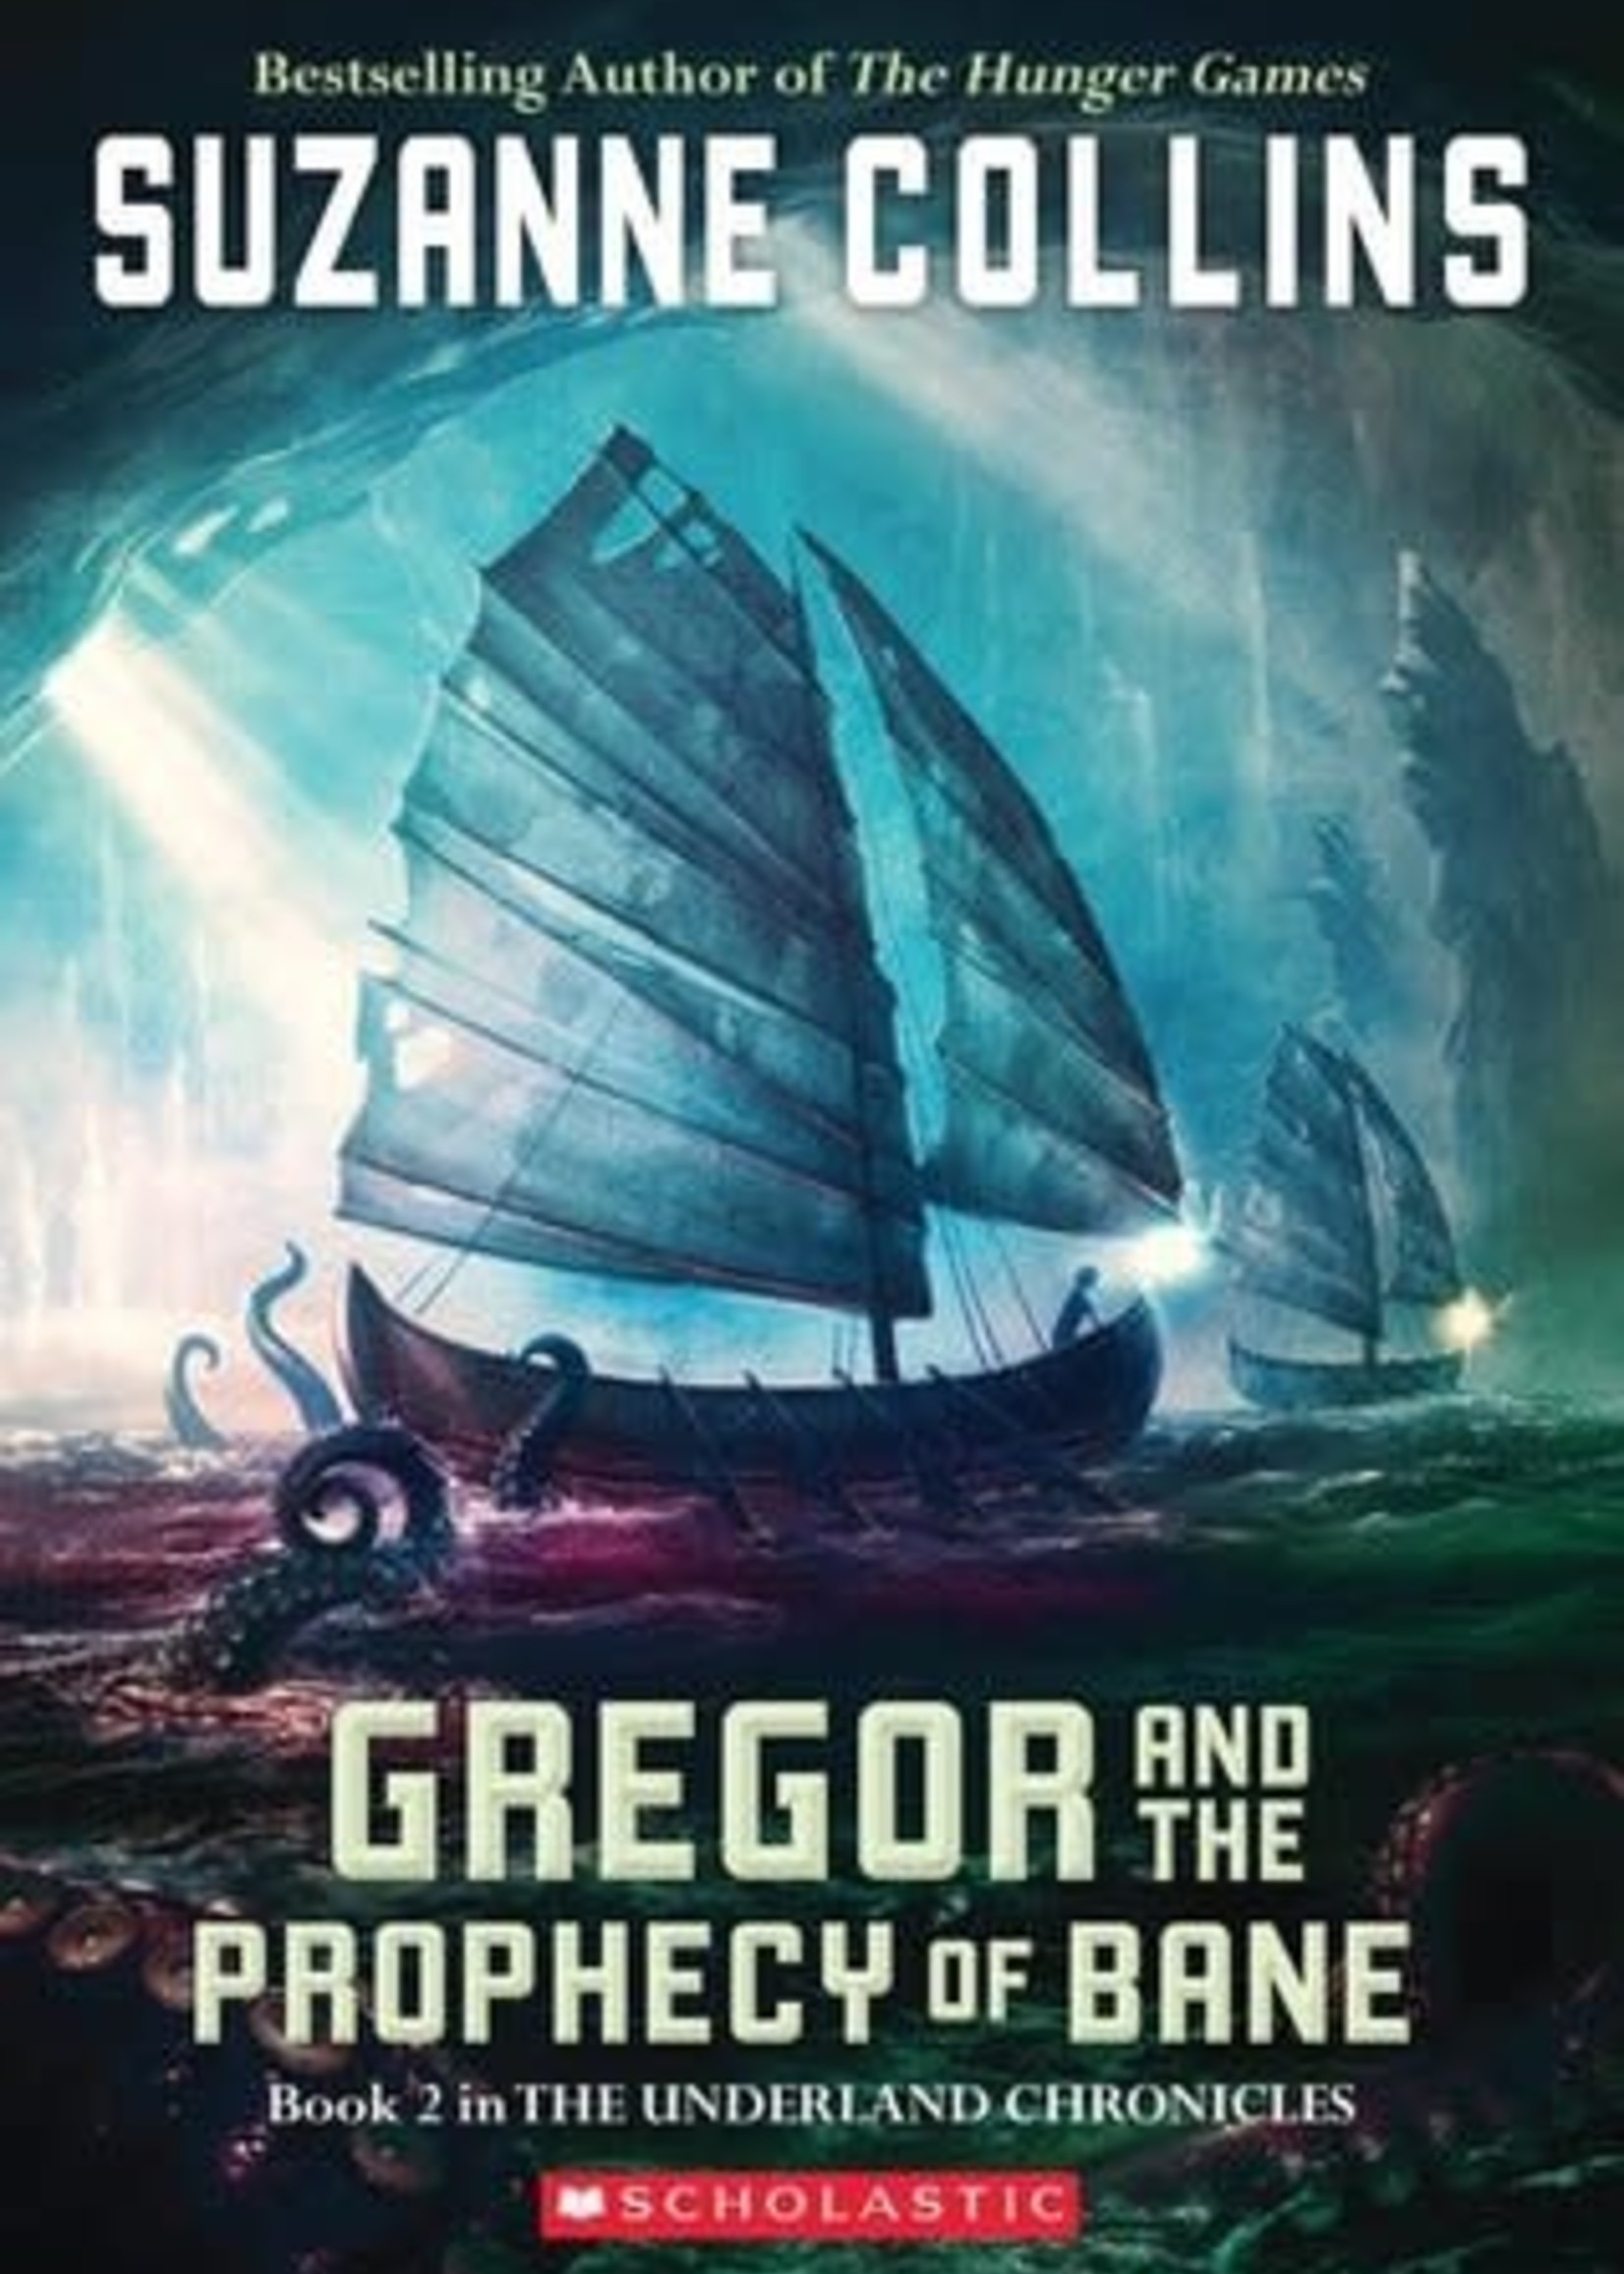 Gregor and the Prophecy of Bane (Underland Chronicles #2) by Suzanne Collins